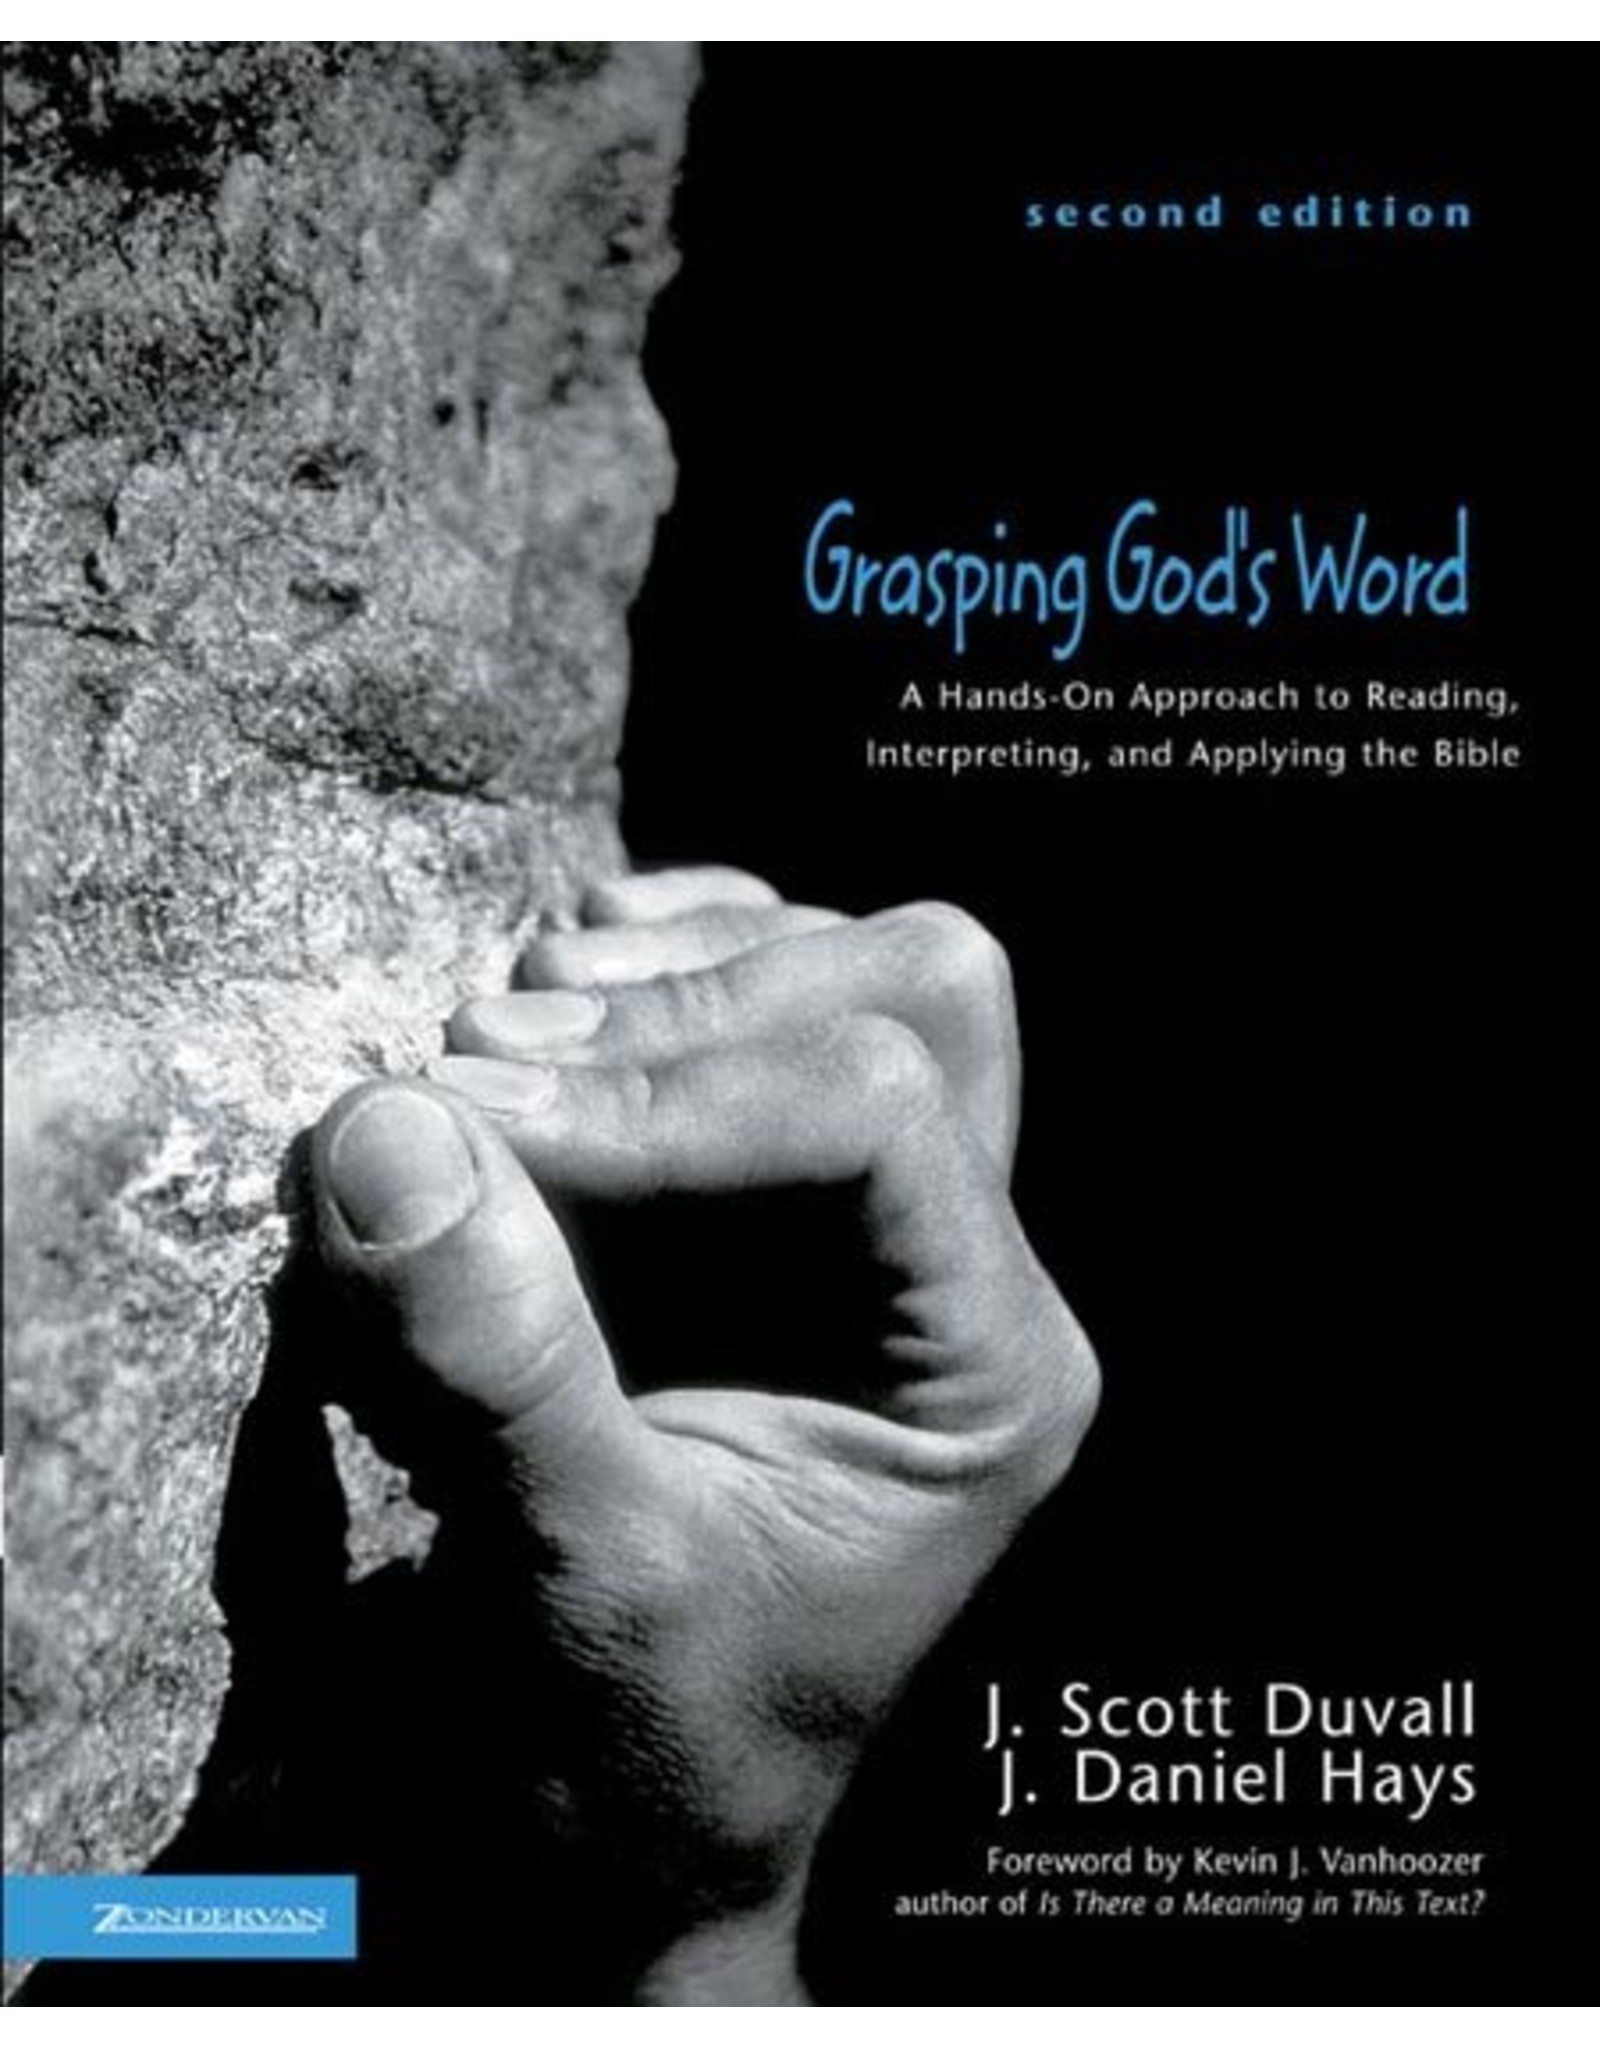 Harper Collins / Thomas Nelson / Zondervan Grasping God's Word 3rd Edition